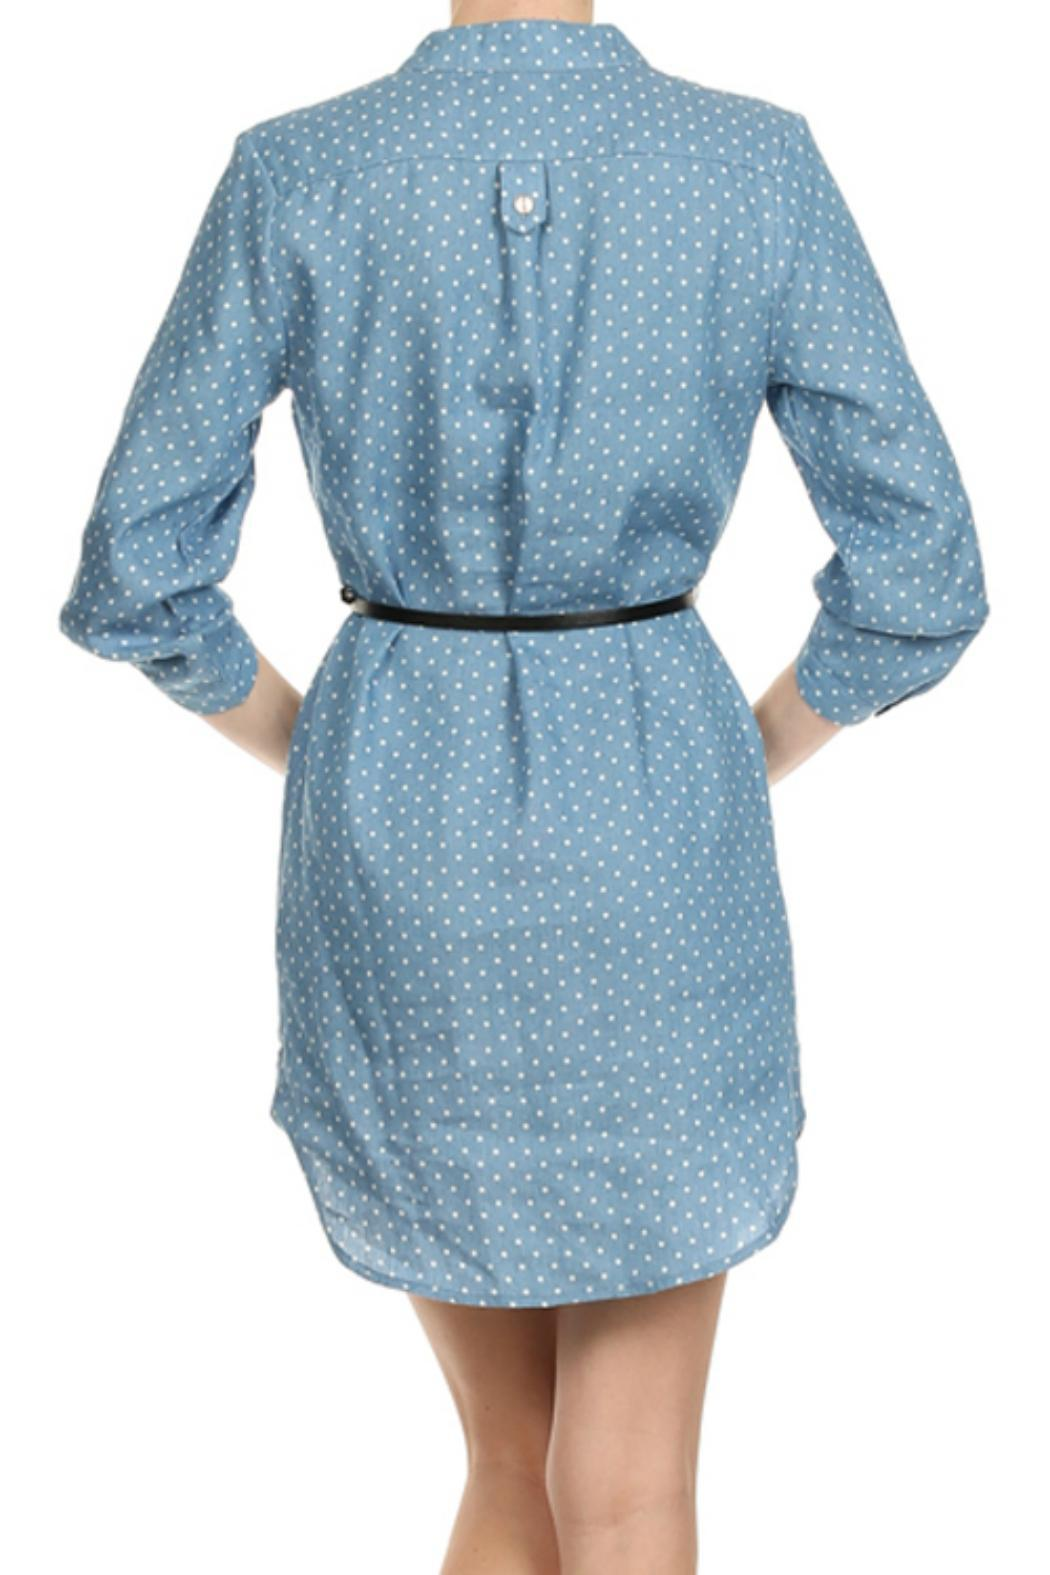 cals belted denim dress from kentucky by cocabelle